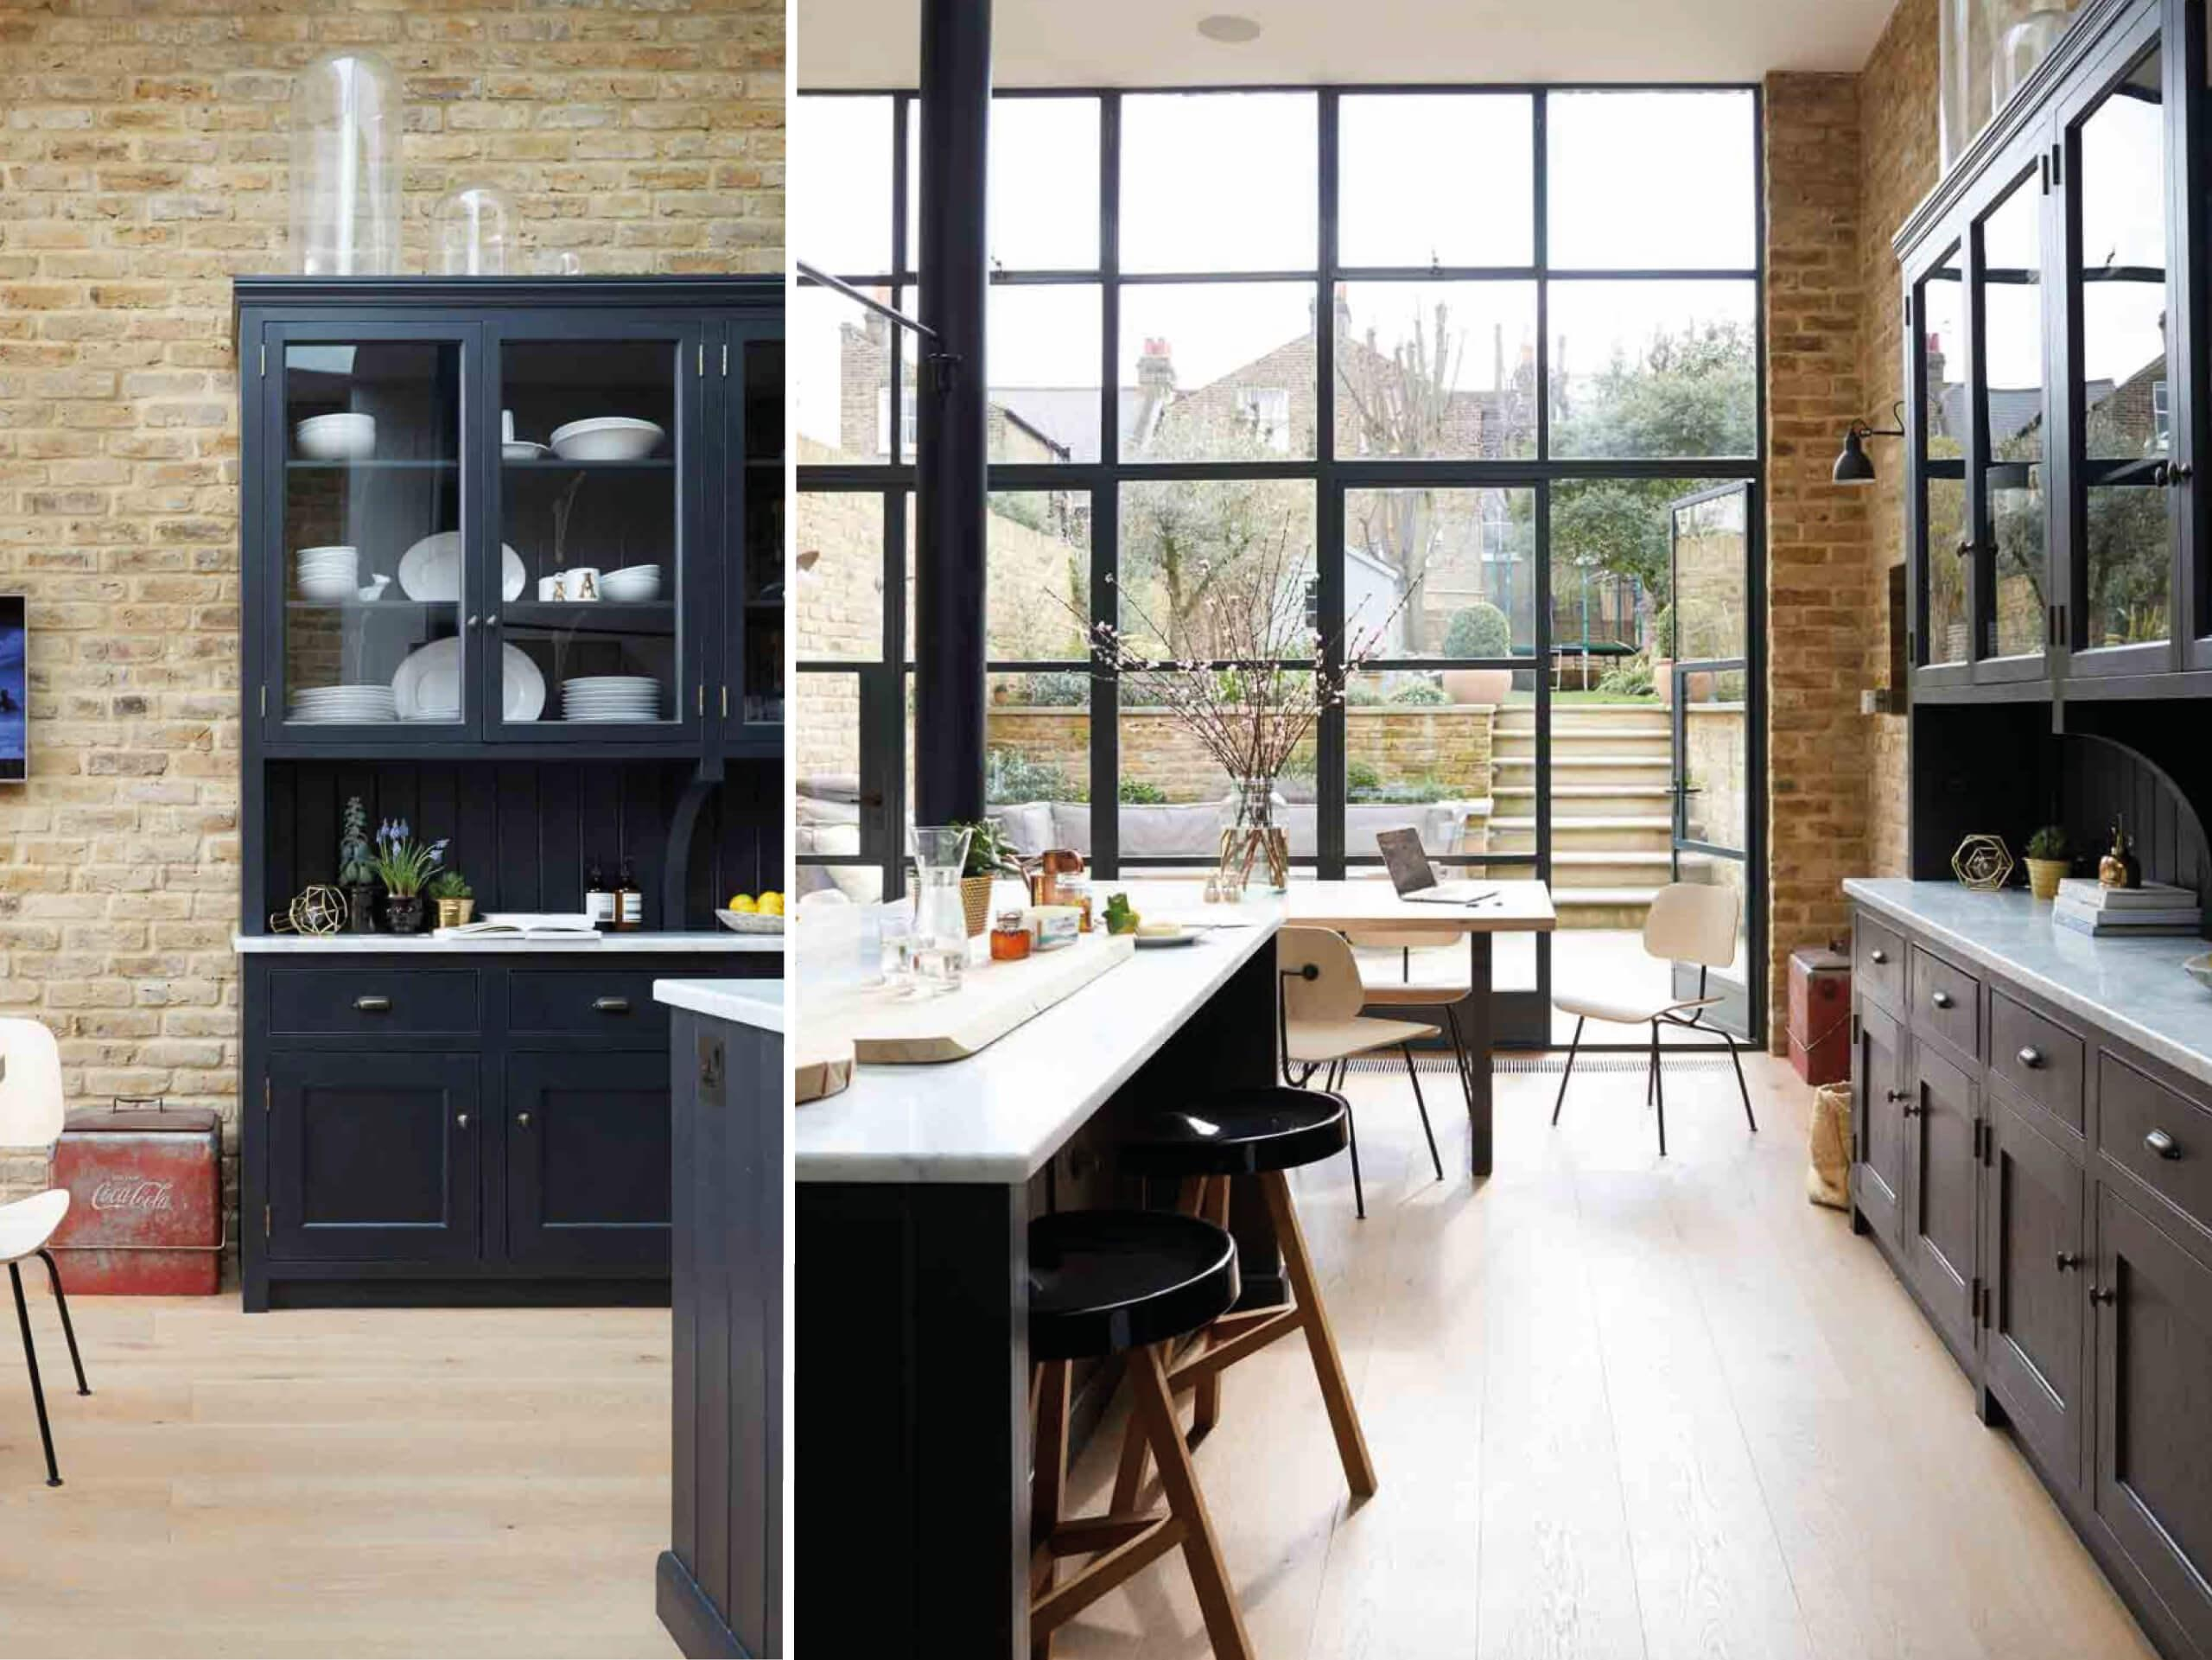 Be Bold and bring luxurious matt black into your kitchen. Images via Living Etc